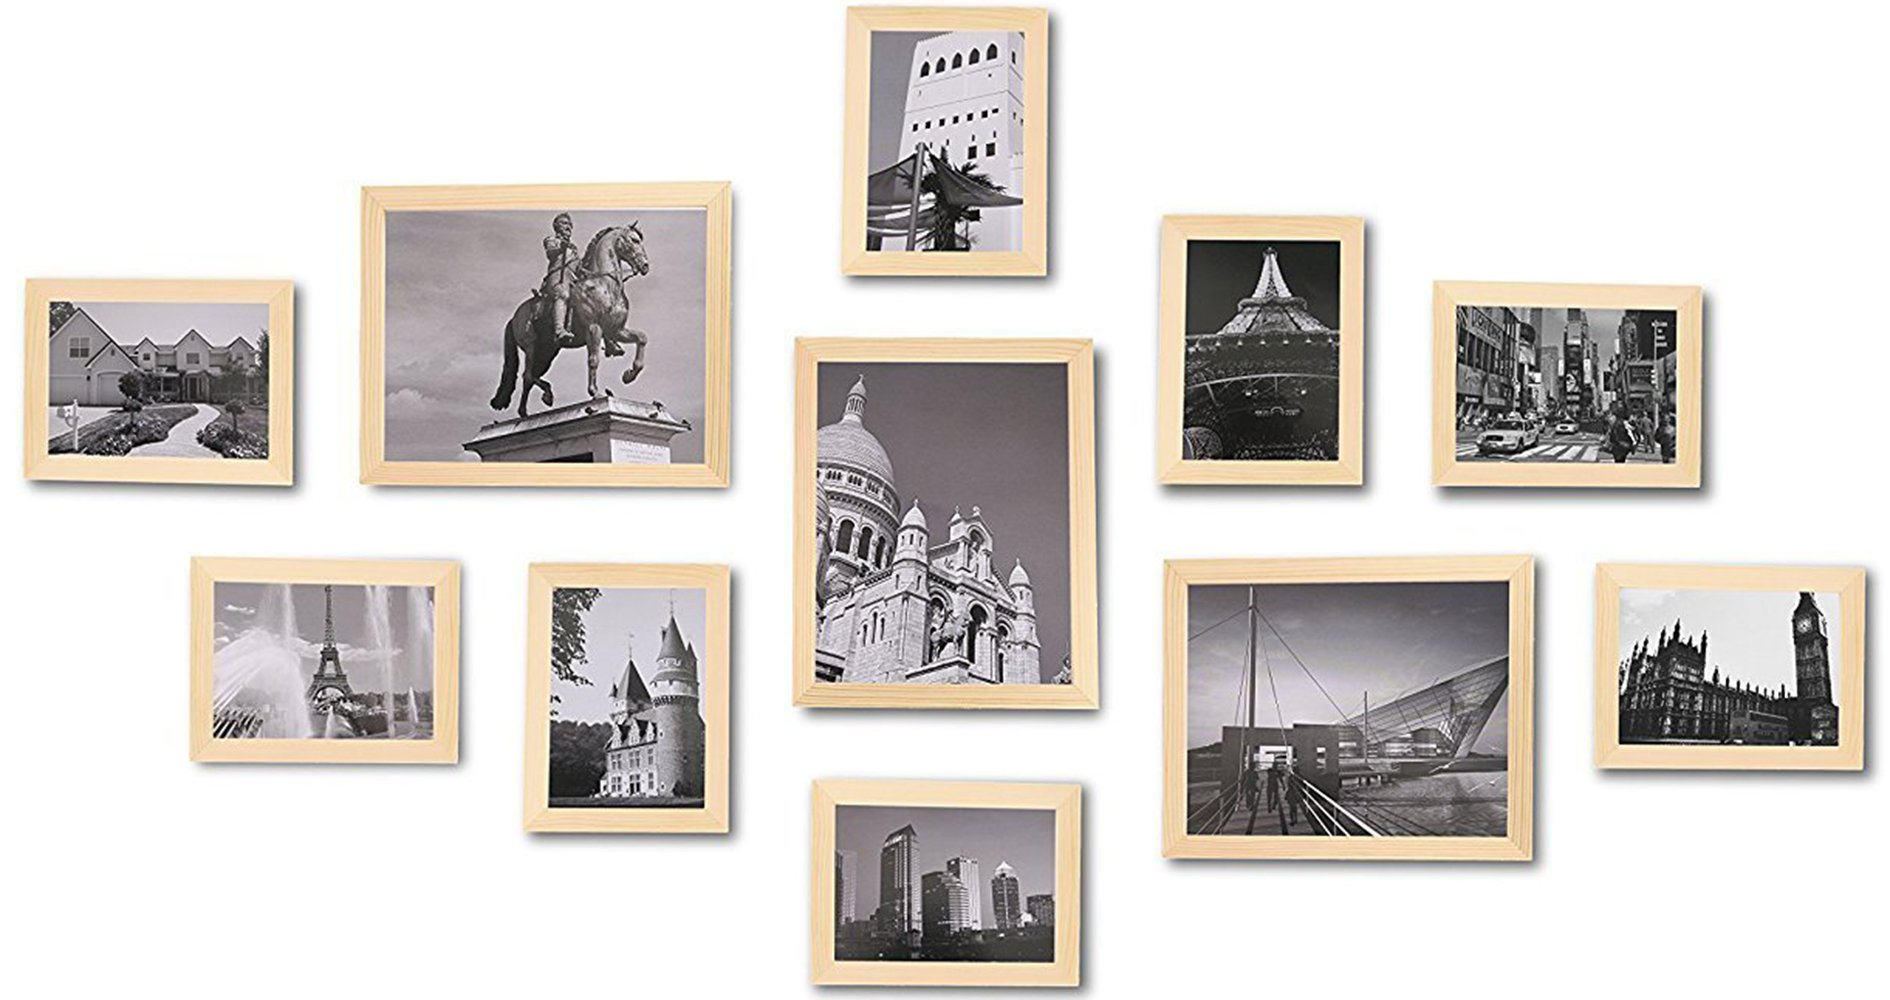 WOOD MEETS COLOR Wall Picture Frames Set of 11, With Hanging Template, Real Glass Window and Photo Mats, 3-8x10 and 8-5x7 Collage Frames (Original Color)